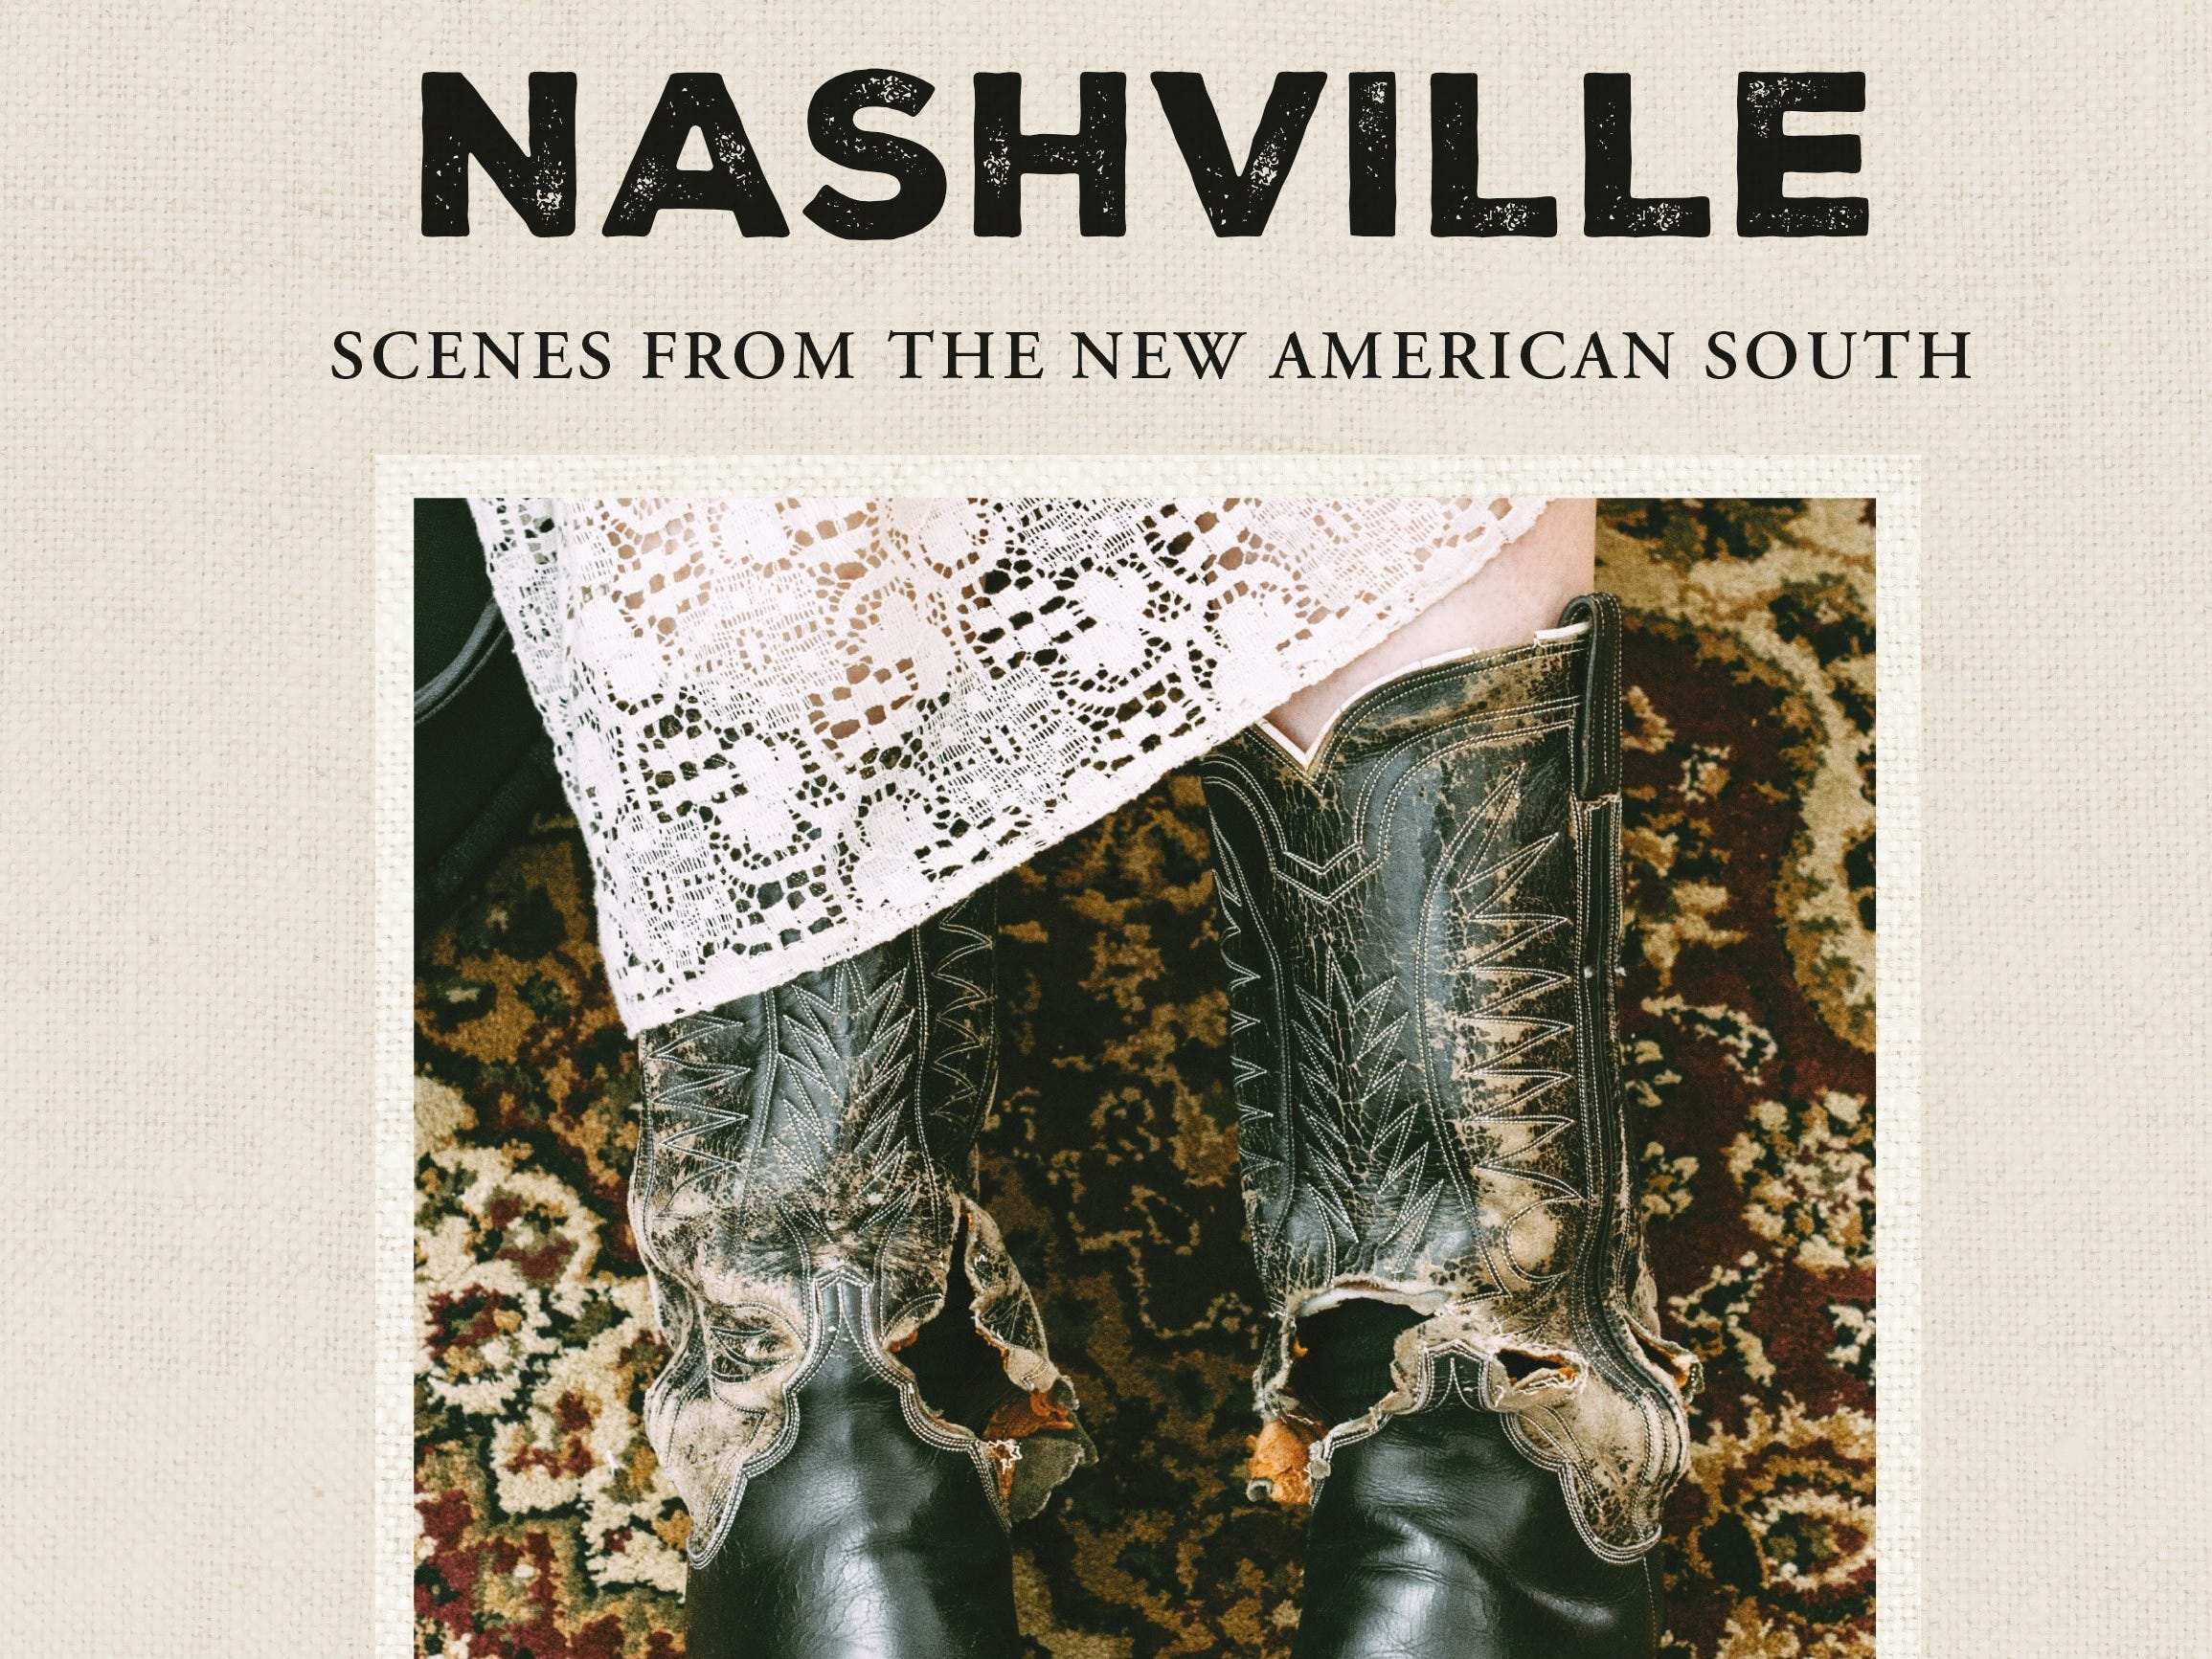 """Nashville: Scenes From the New American South"" features an introduction by Jon Meacham, text by Ann Patchett and photographs by Heidi Ross."